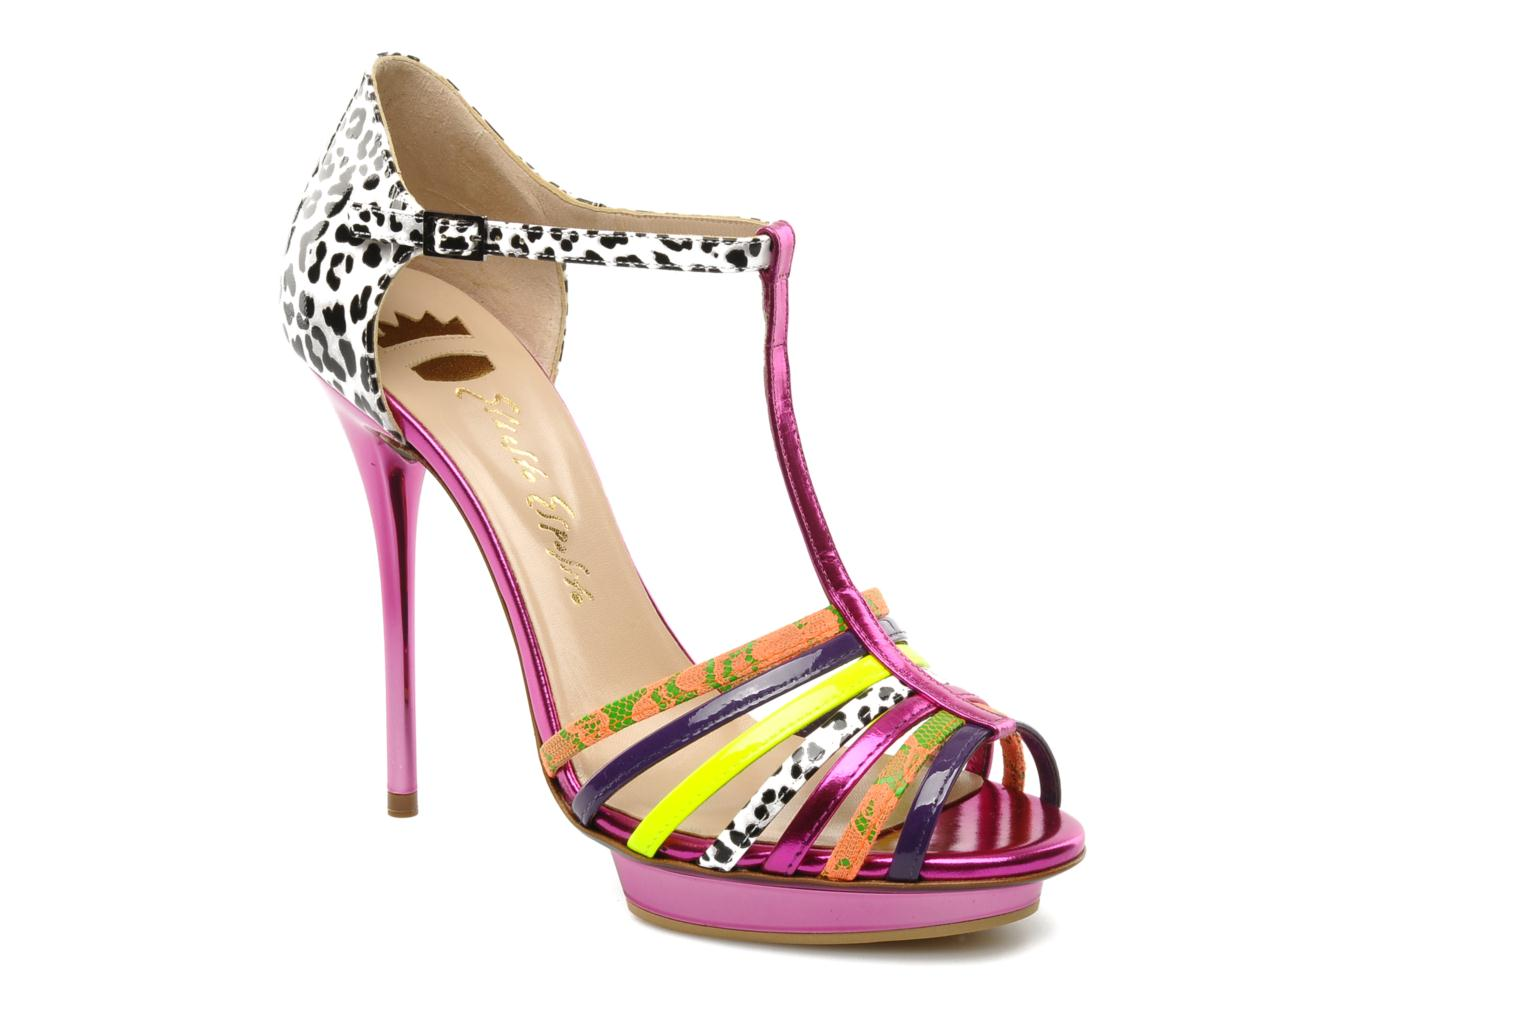 Marques Chaussure luxe femme Ernesto Esposito femme Edme Moire Viola/ Pizzo Fluo 03/ Lam Fuxia / Ghana 100/742/ Vern Gial